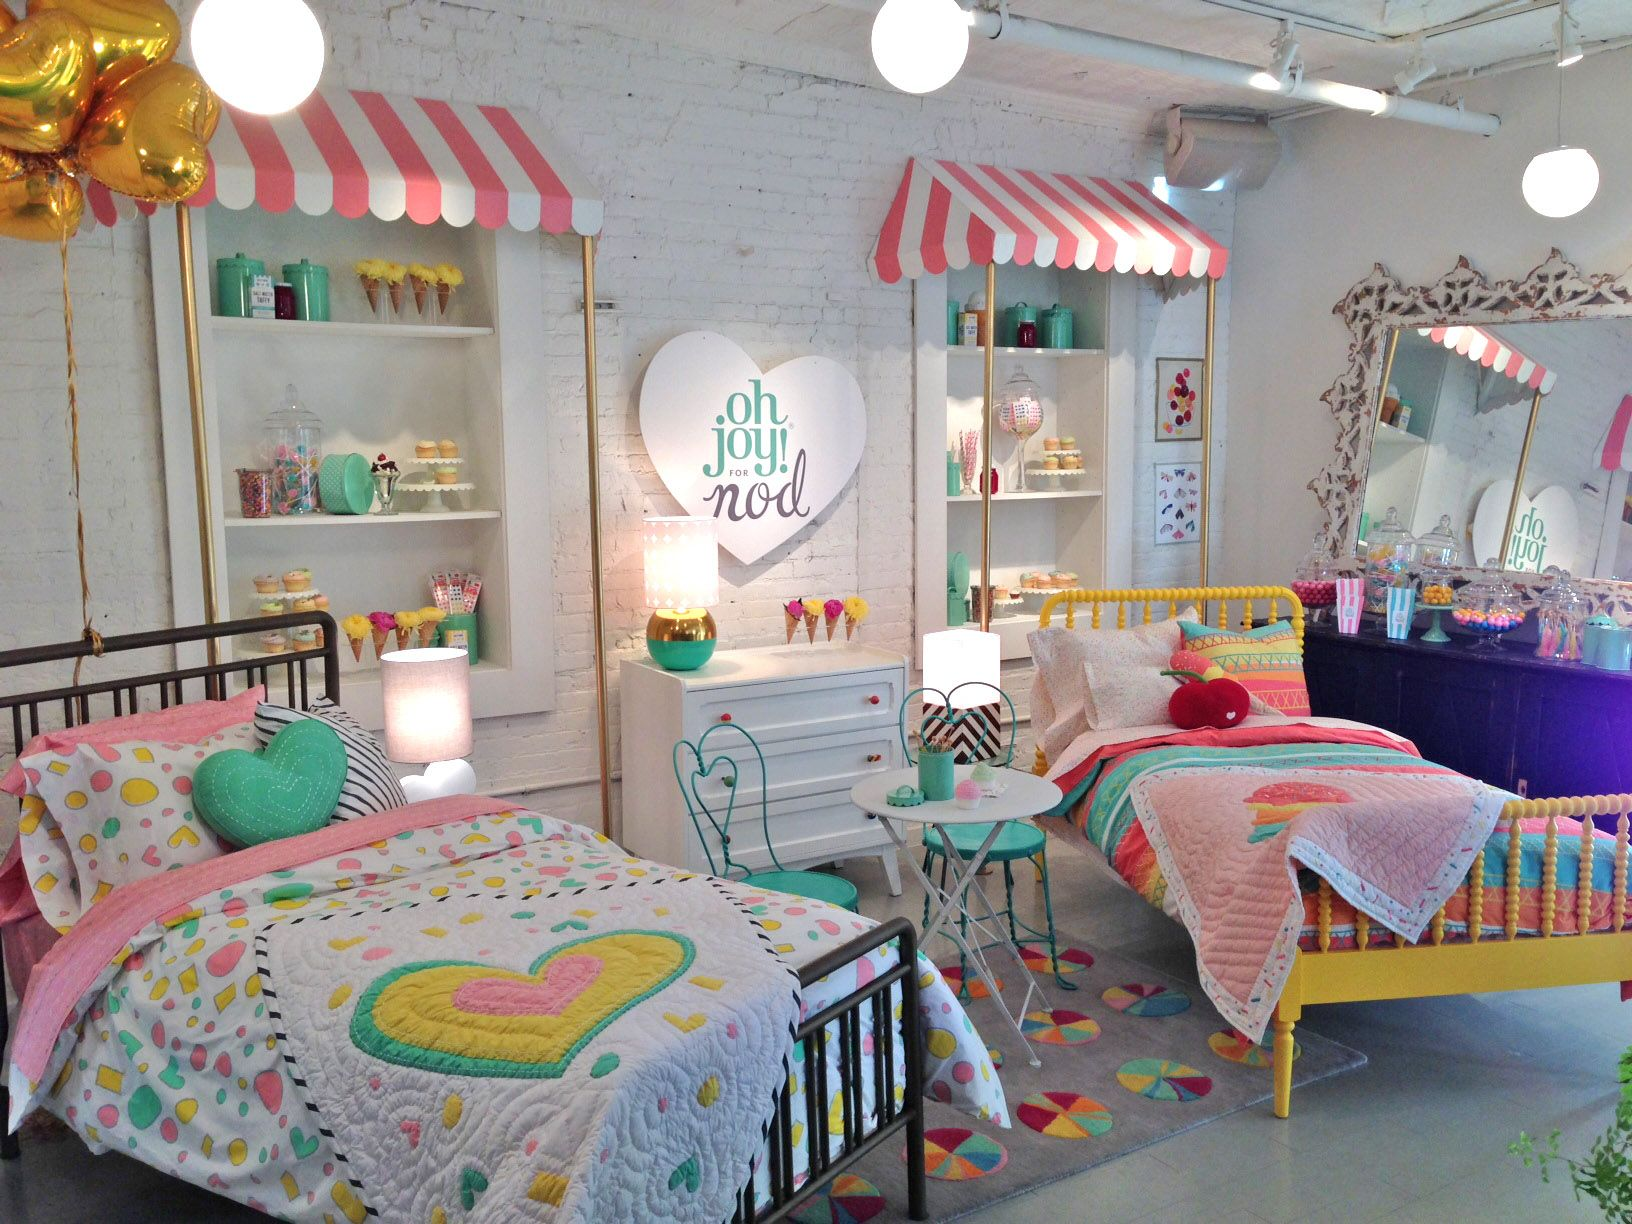 Ice cream shop to introduce Oh Joy! for Nod.